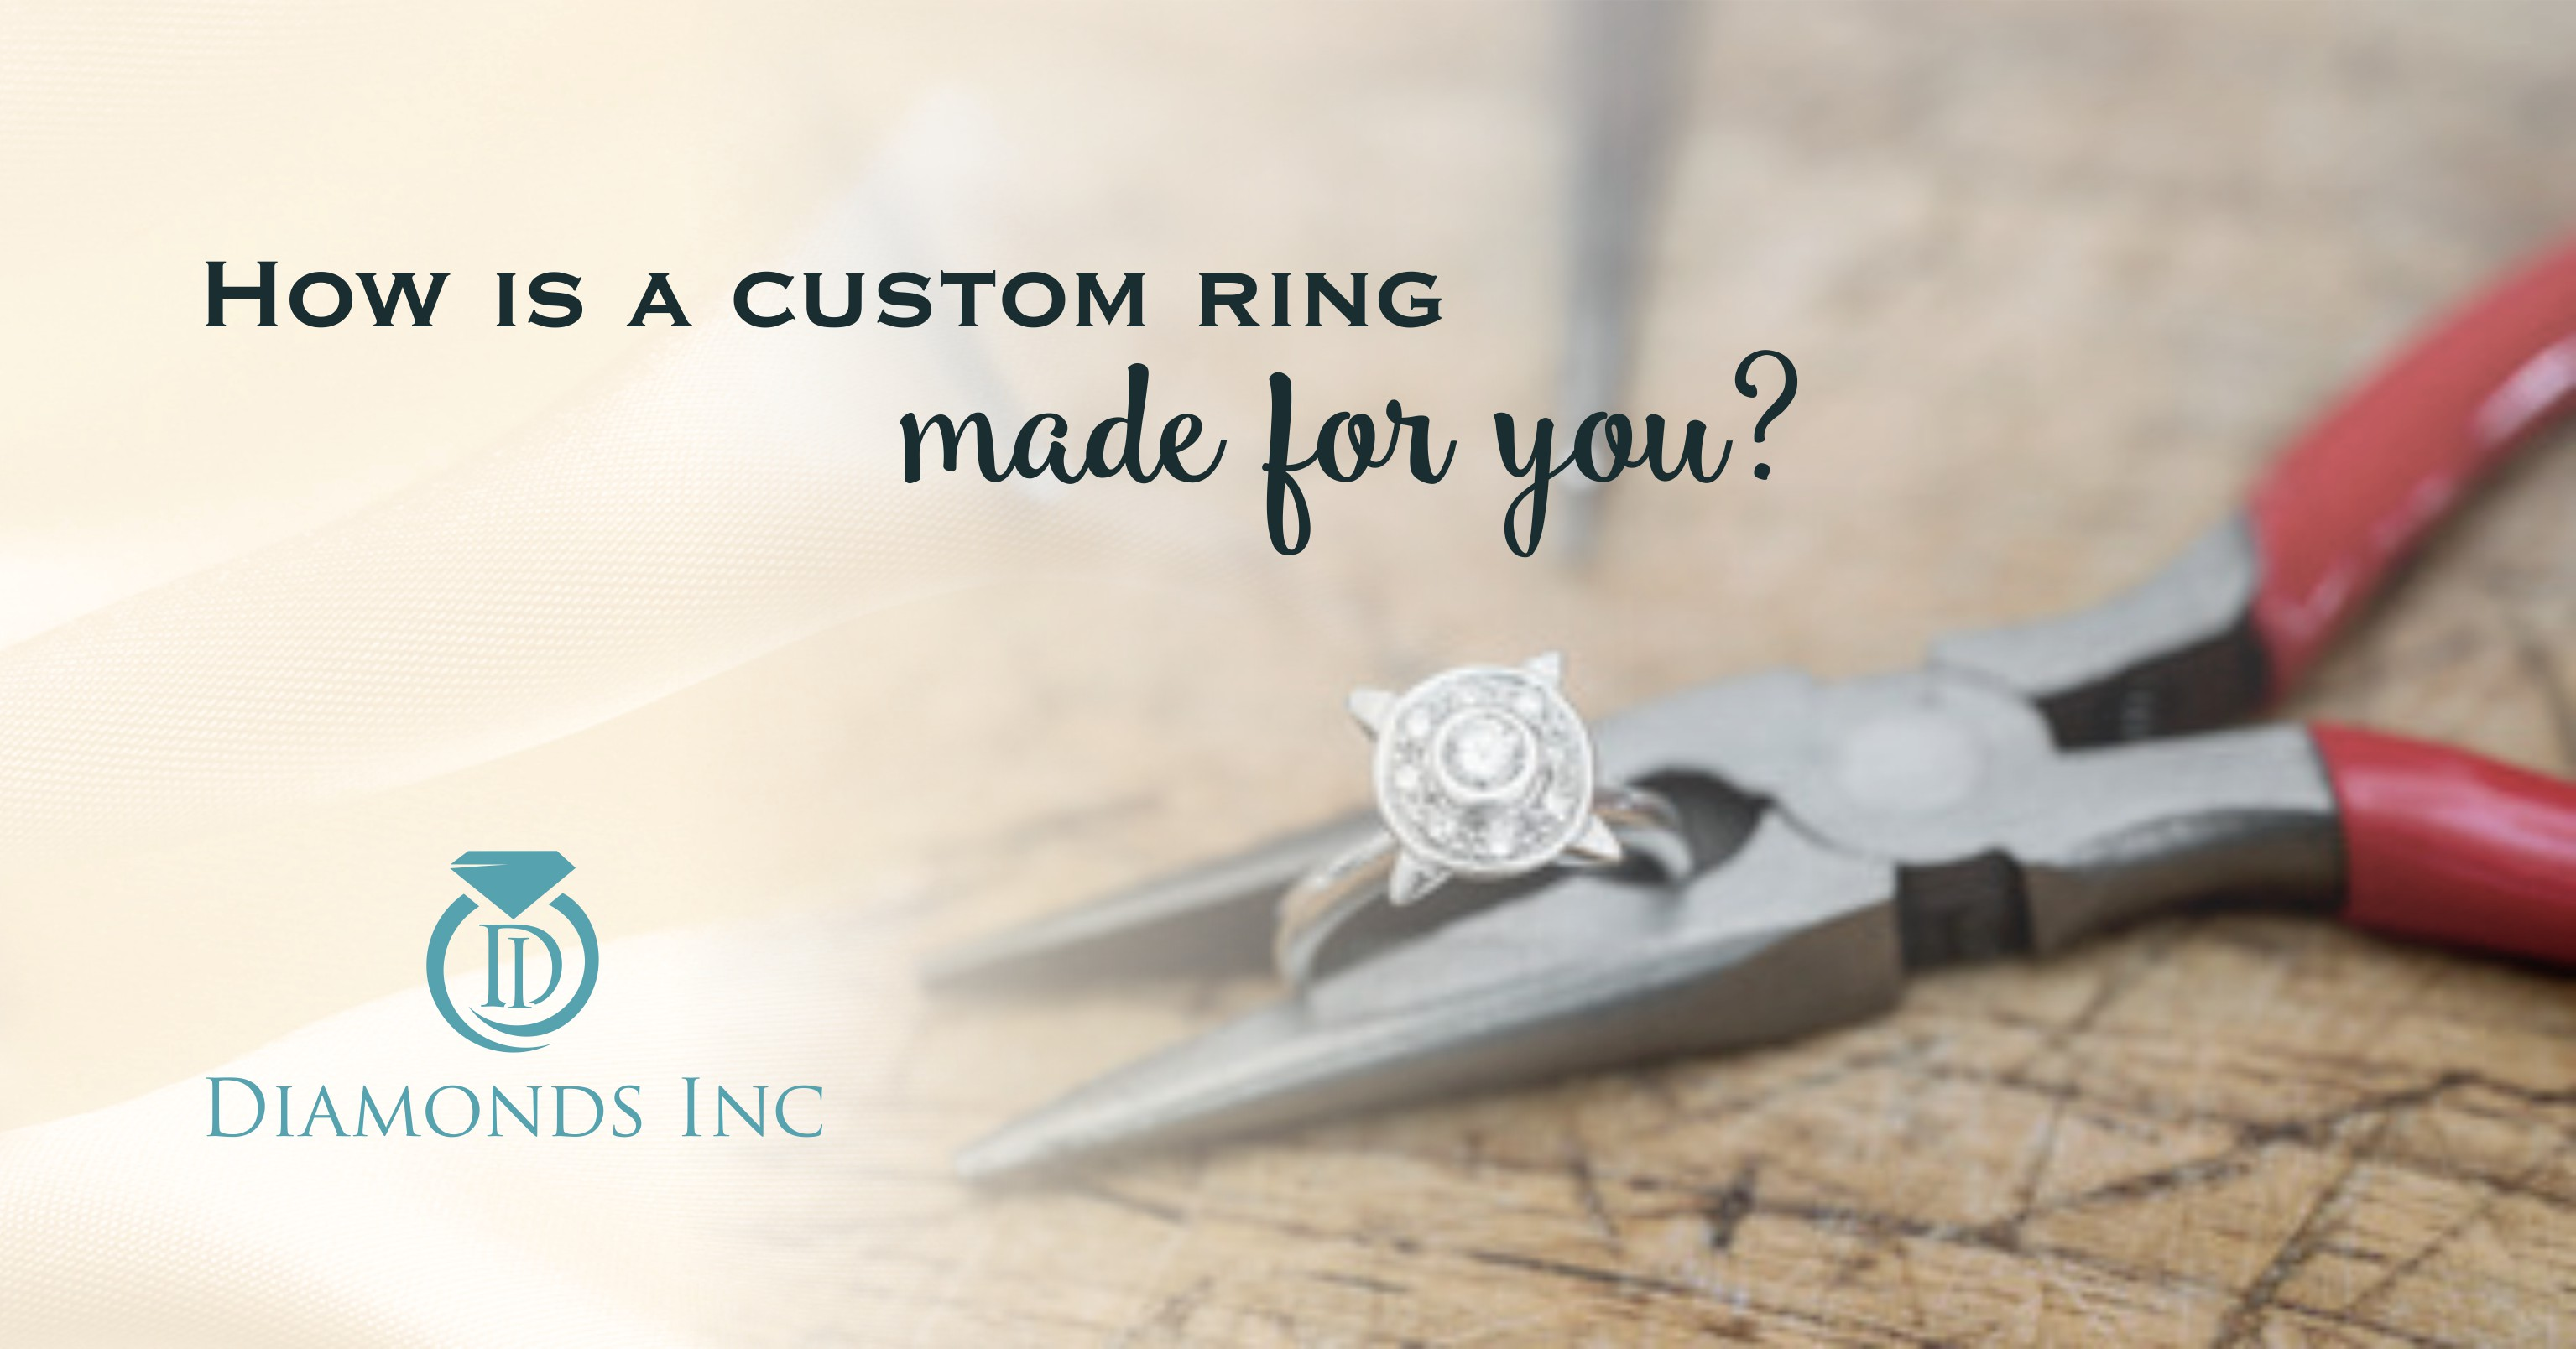 <h1>How is a custom ring made for you?</h1>